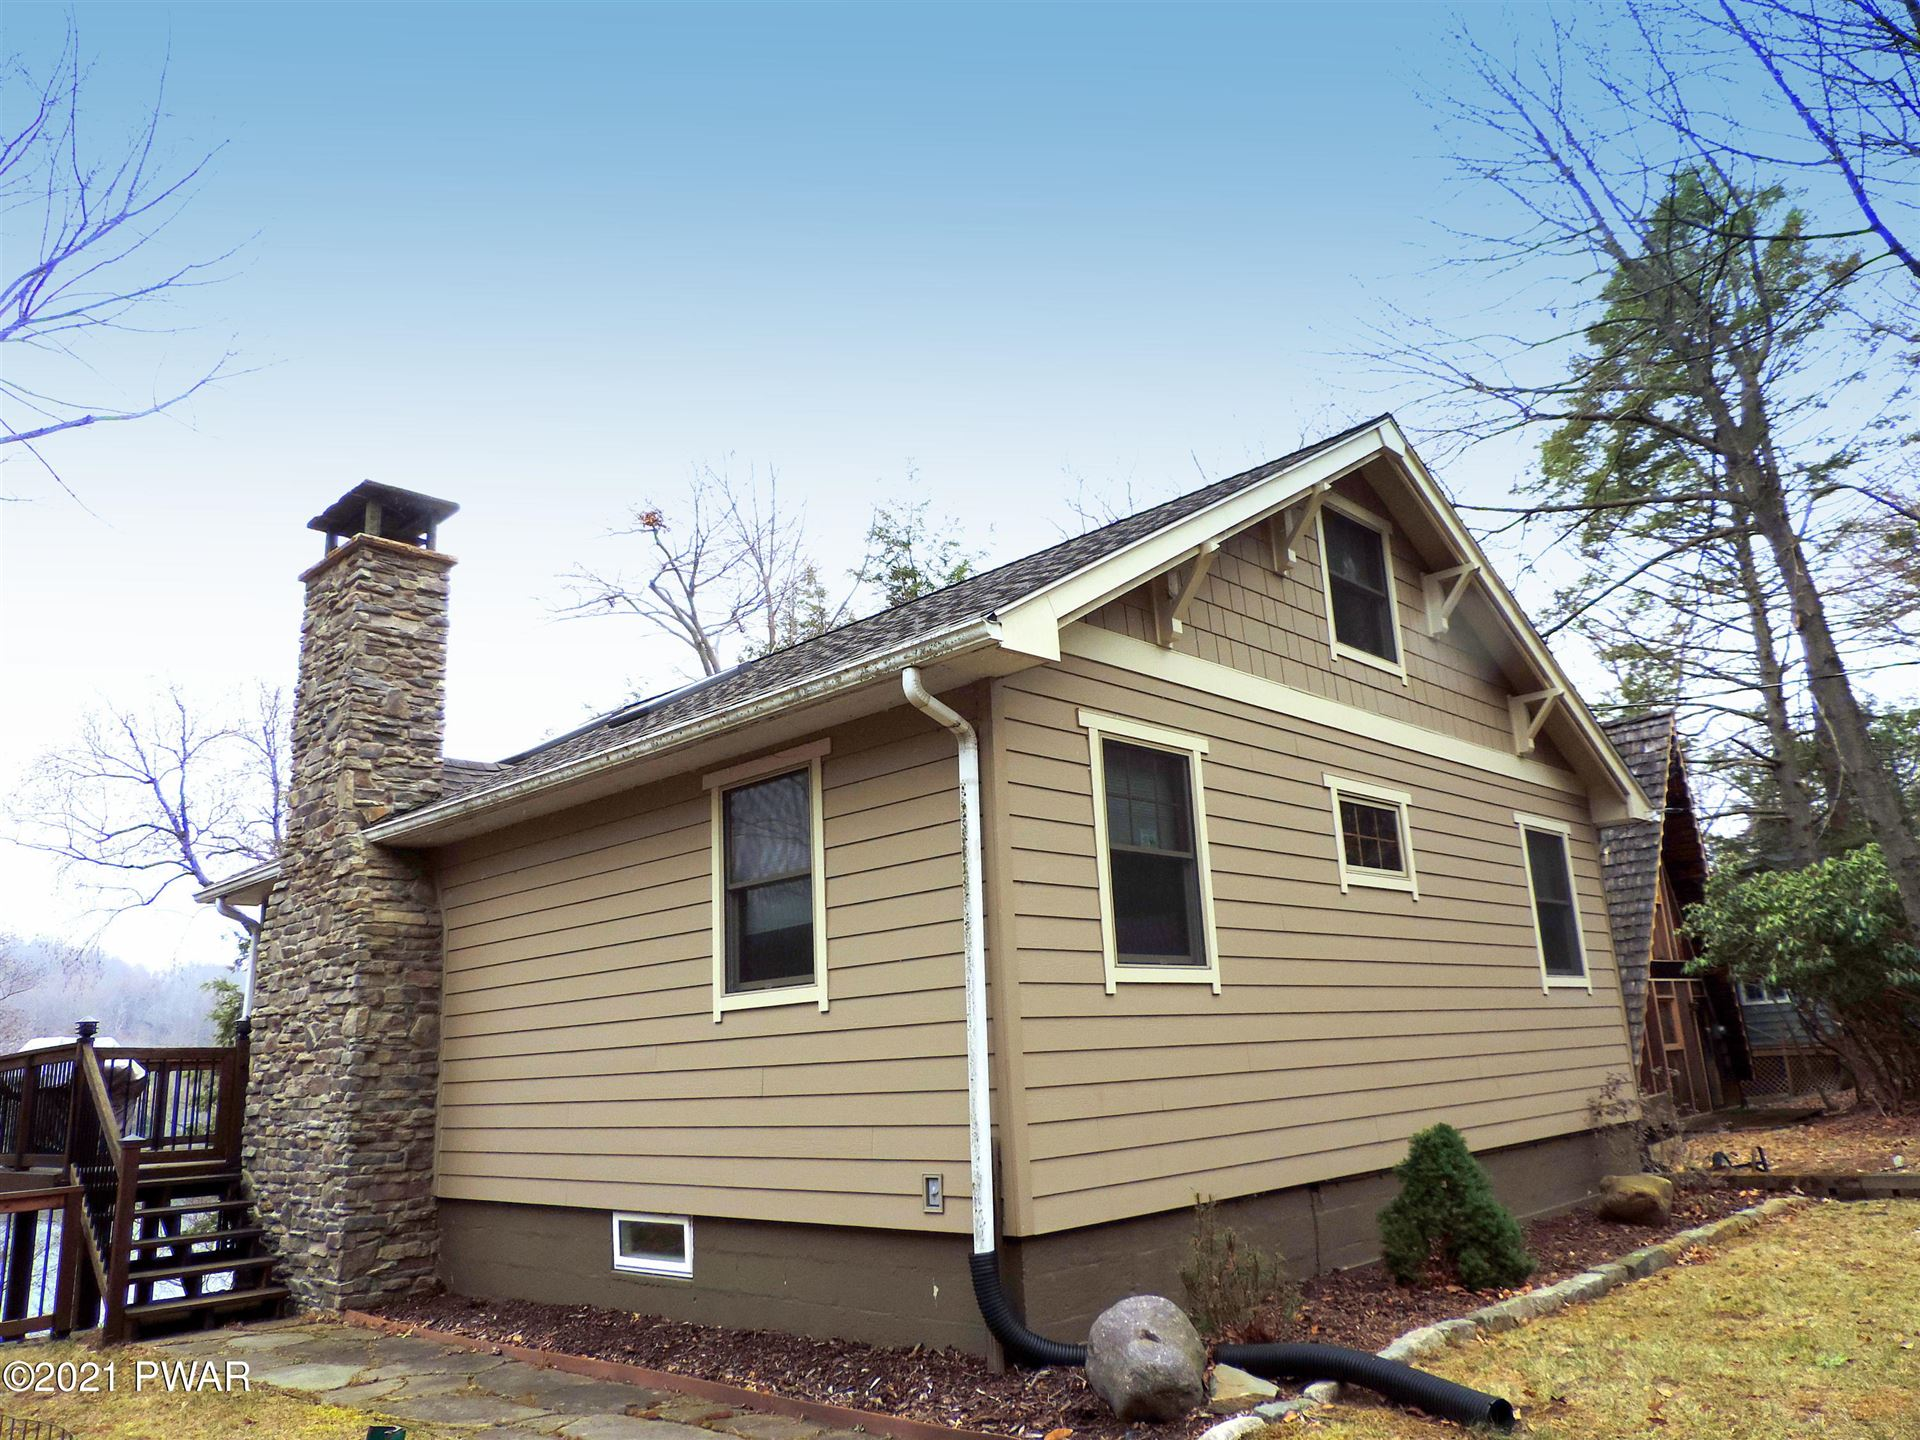 Photo of 210 Lennon Rd, Greentown, PA 18426 (MLS # 21-892)